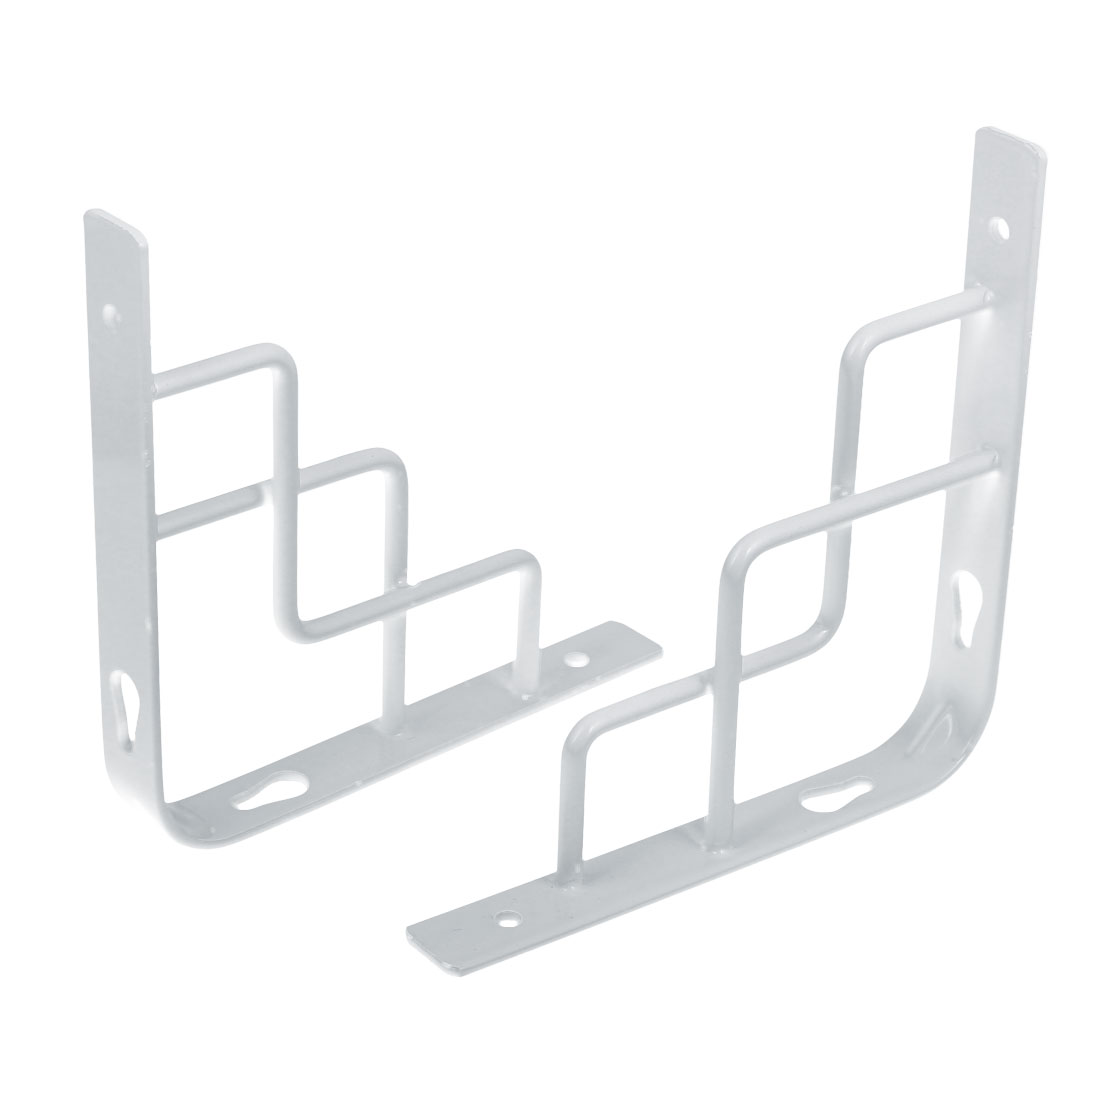 Home Store Wall Mounted Metal L Shaped Shelf Bracket White 150x150mm 2pcs